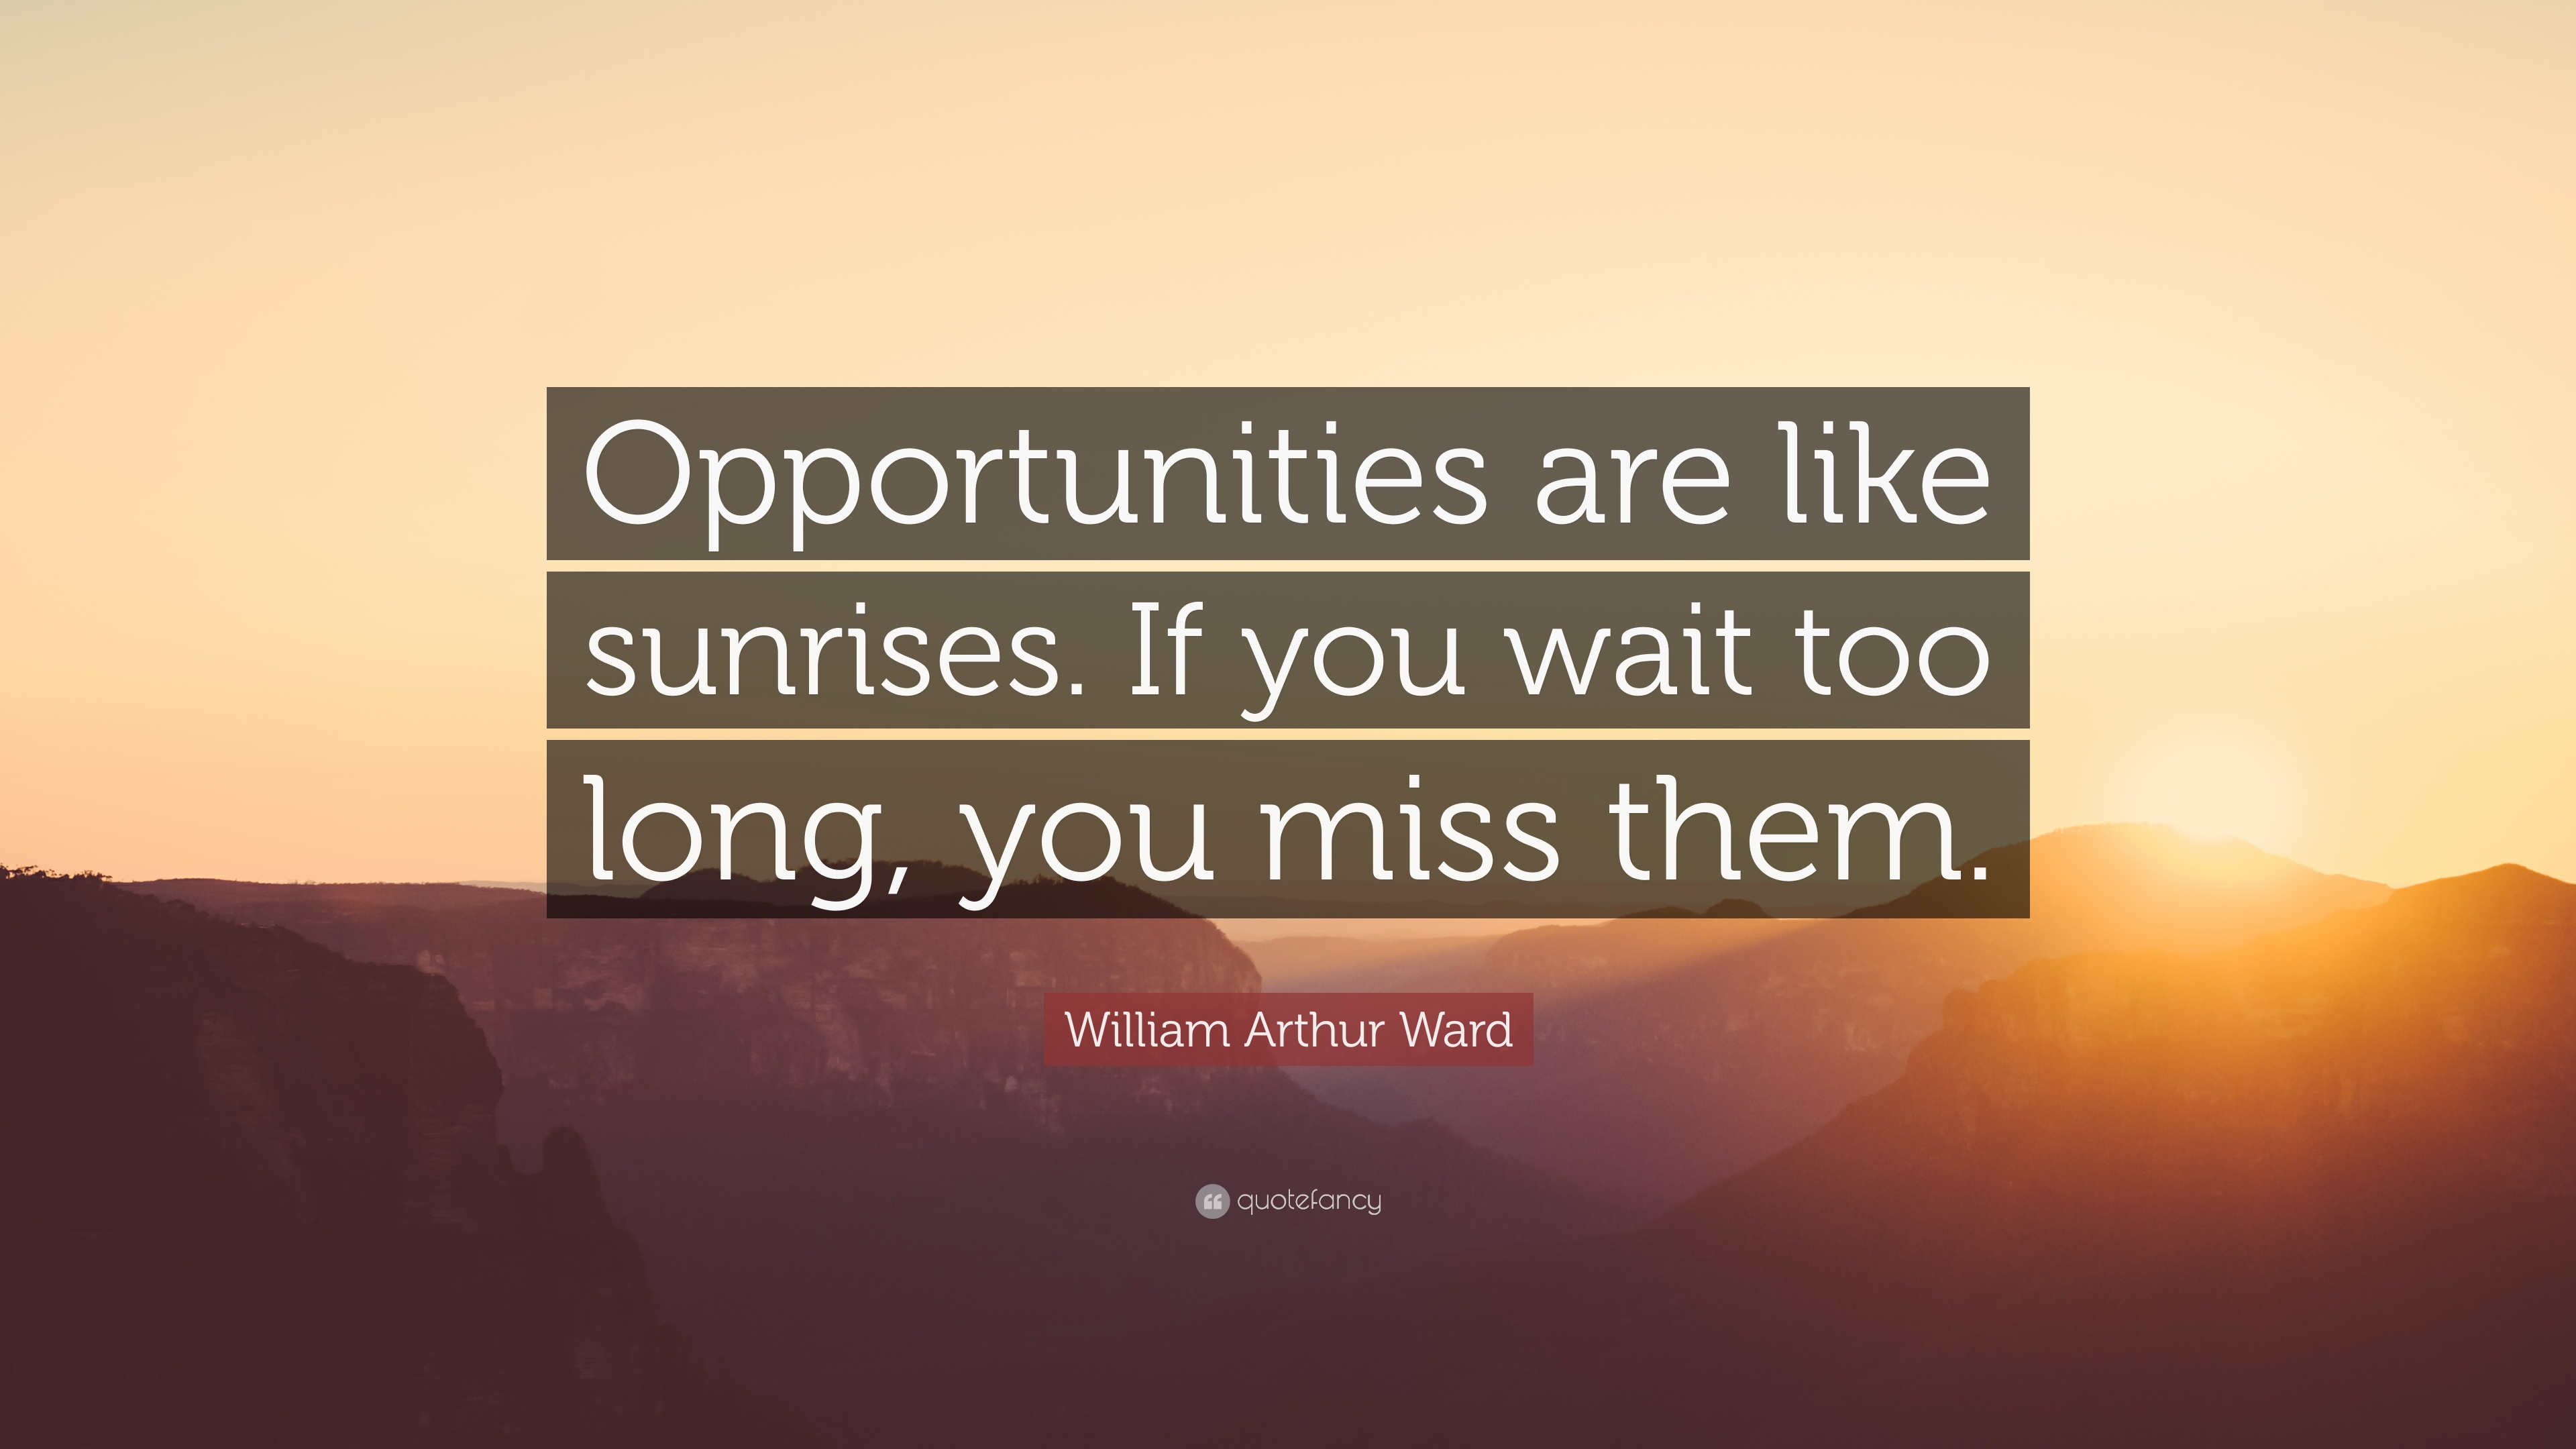 William arthur ward quote opportunities are like sunrises if you wait too long